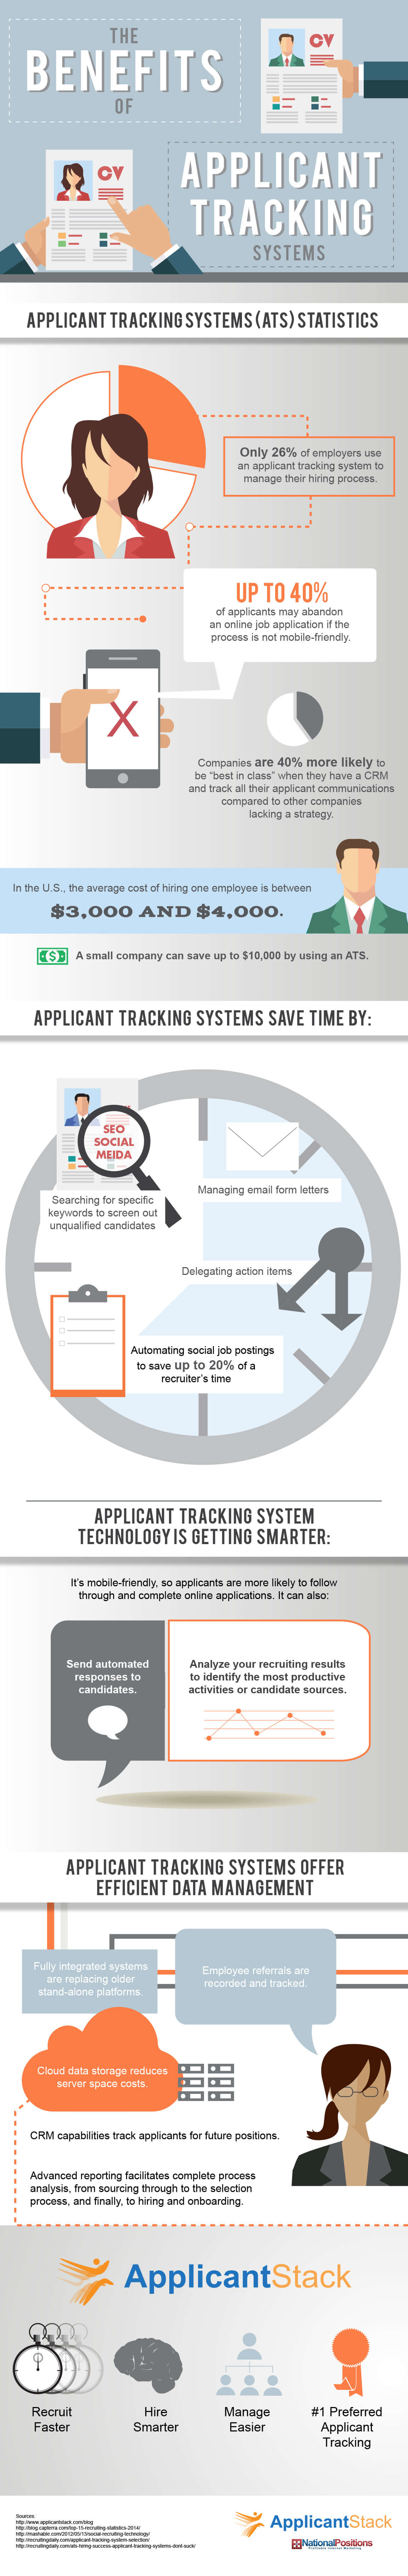 applicant tracking system infographic